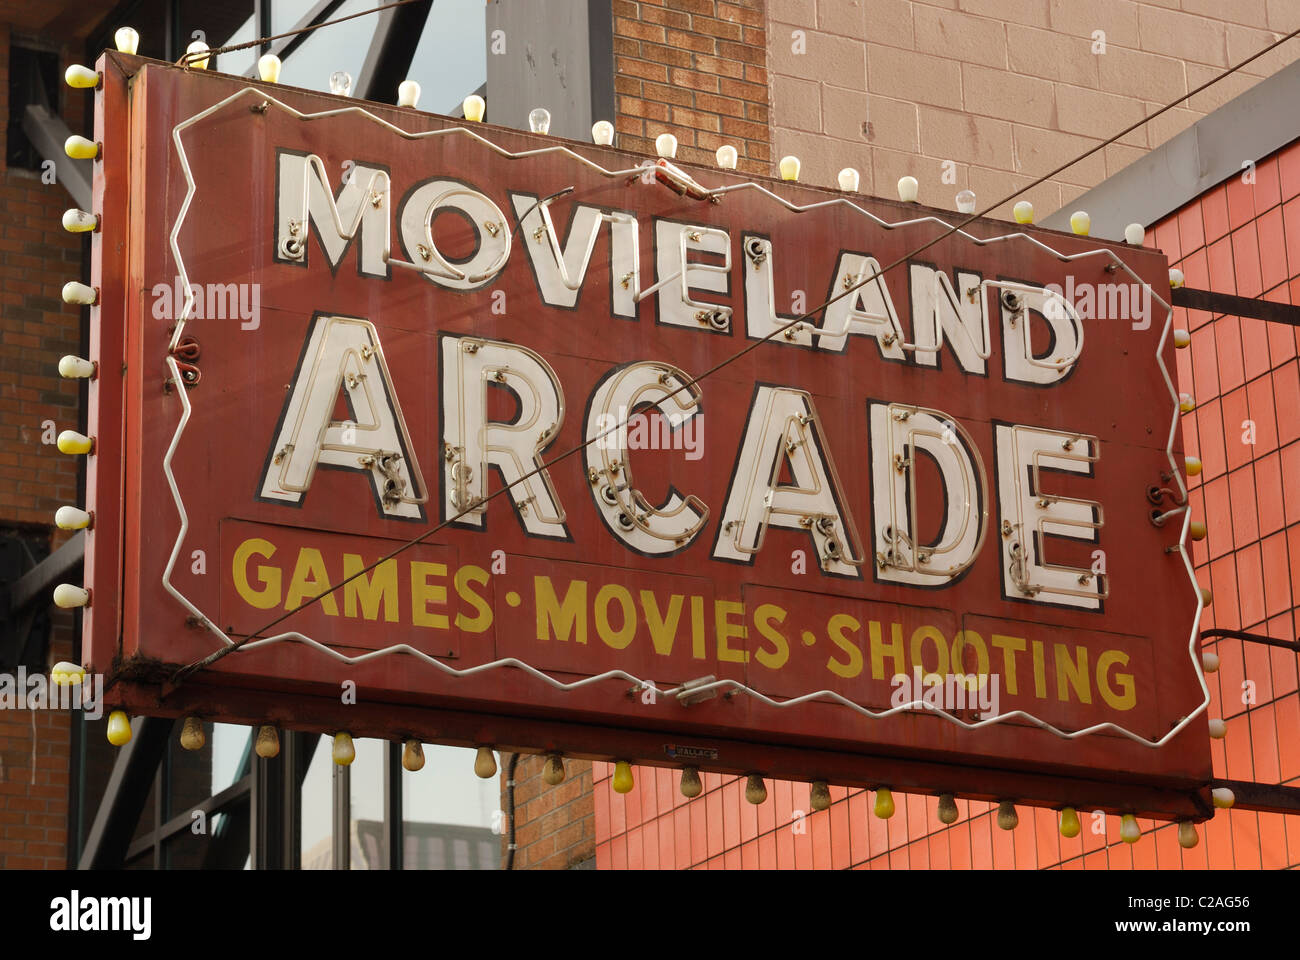 Neon sign advertising arcade games and movies for an arcade store on Granville Street Vancouver - Stock Image